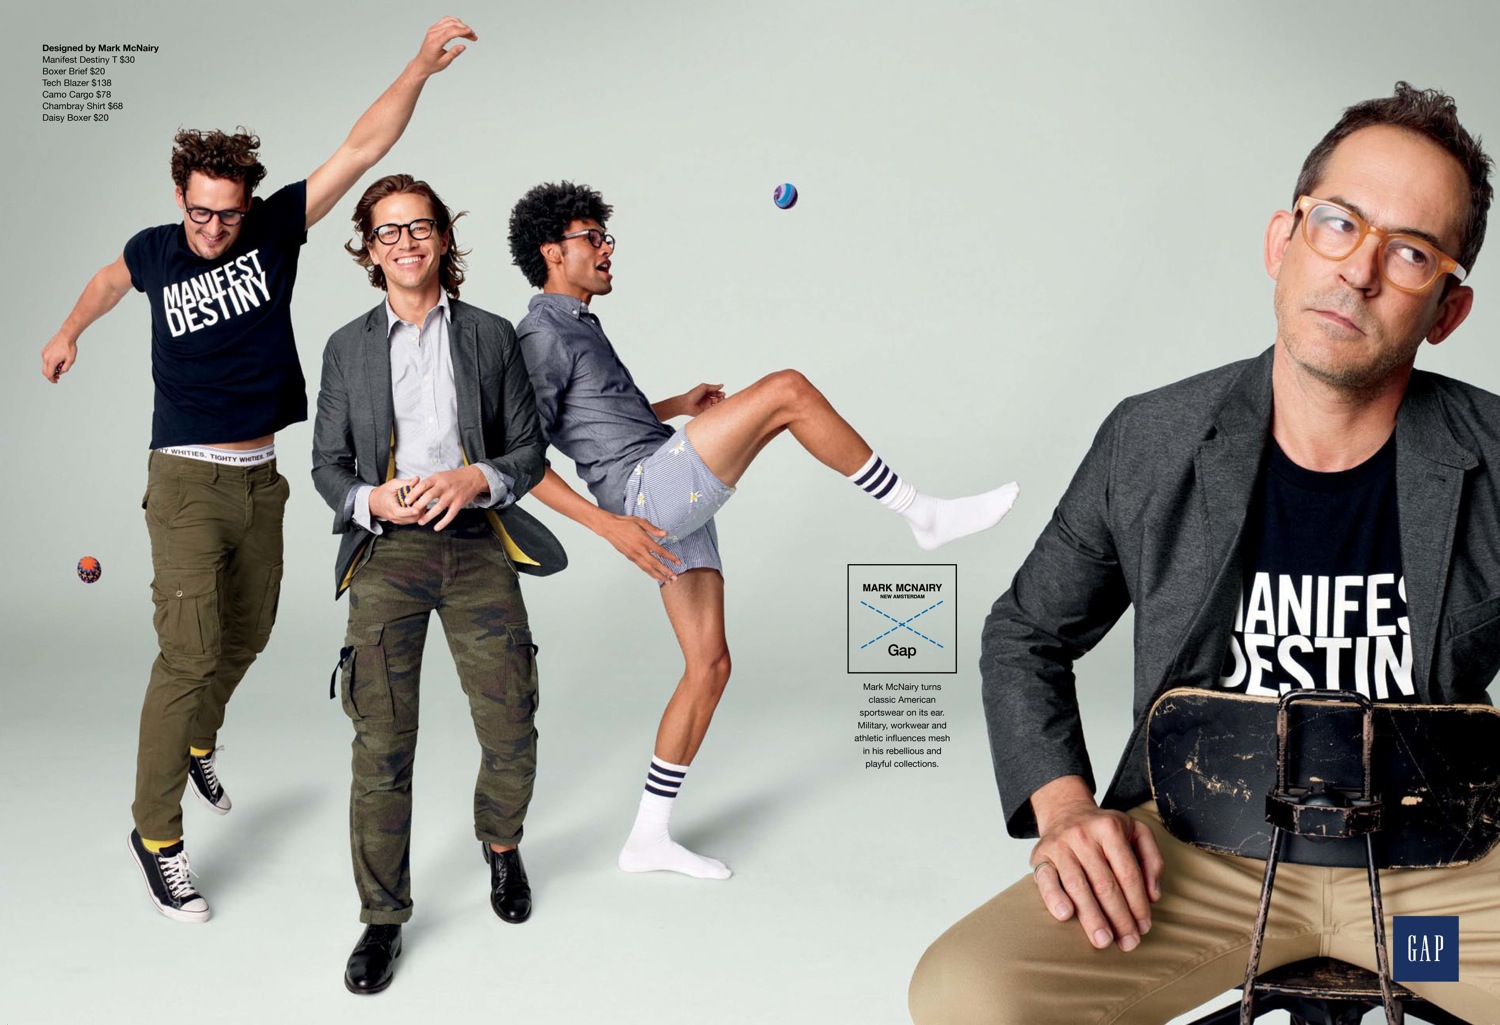 Sam Webb & Tommie Cross Front GAP + GQ Fall/Winter 2012 Campaign